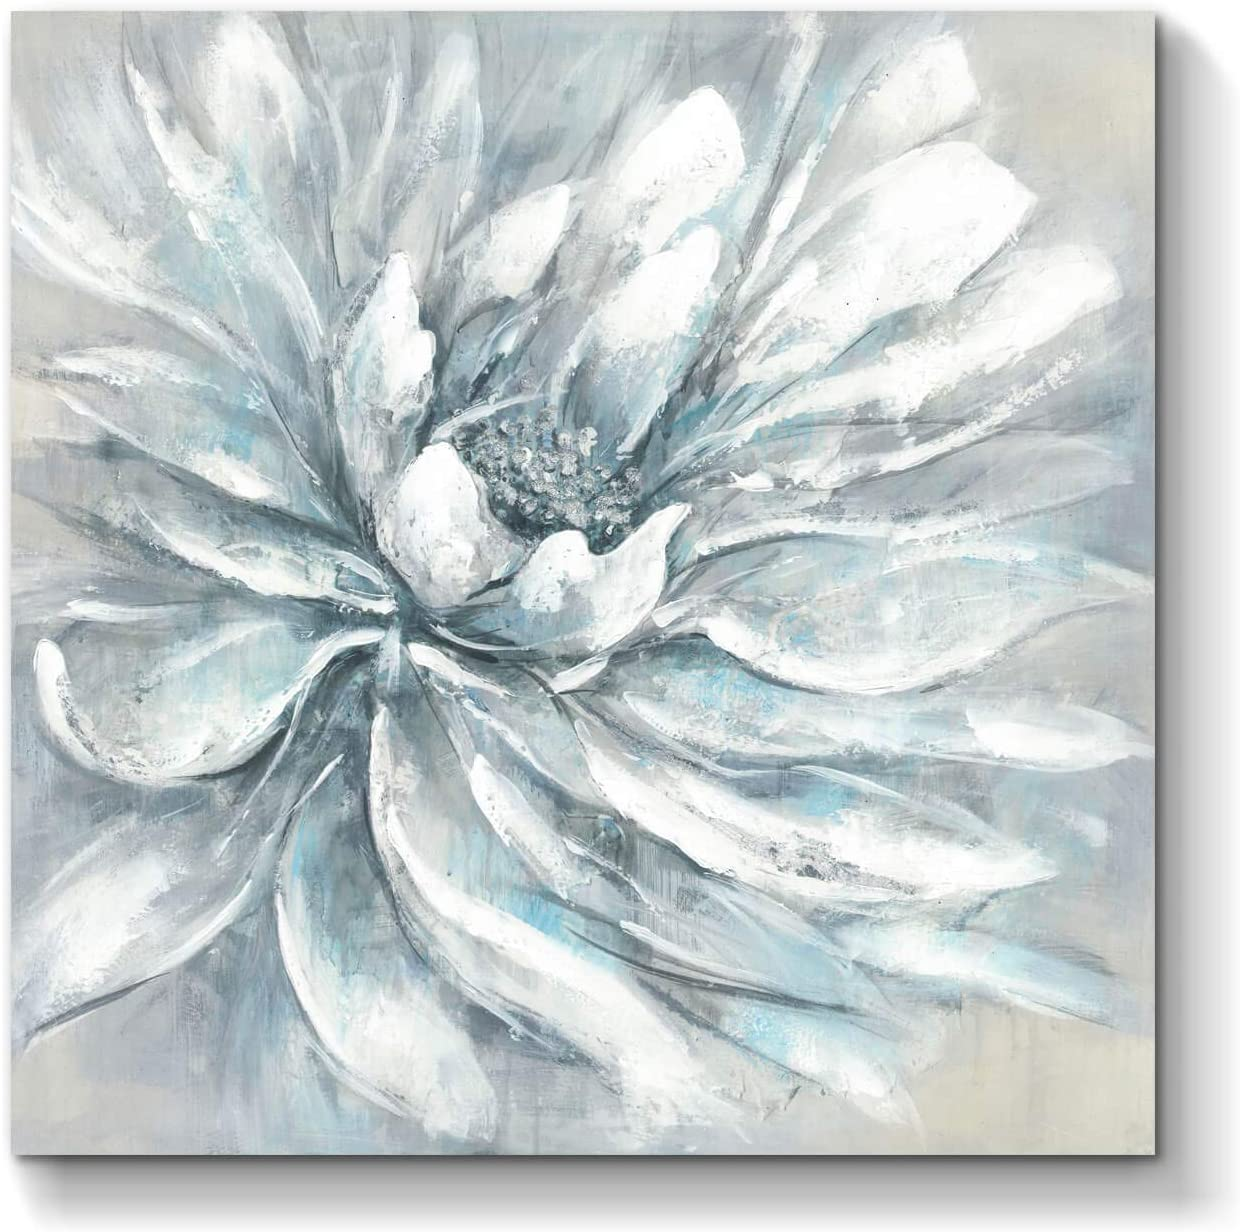 Flower Bloom Abstract Wall Art Floral Artwork Hand Painted Painting On Wrapped Canvas For Living Room 24 X 24 X 1 Panel Paintings